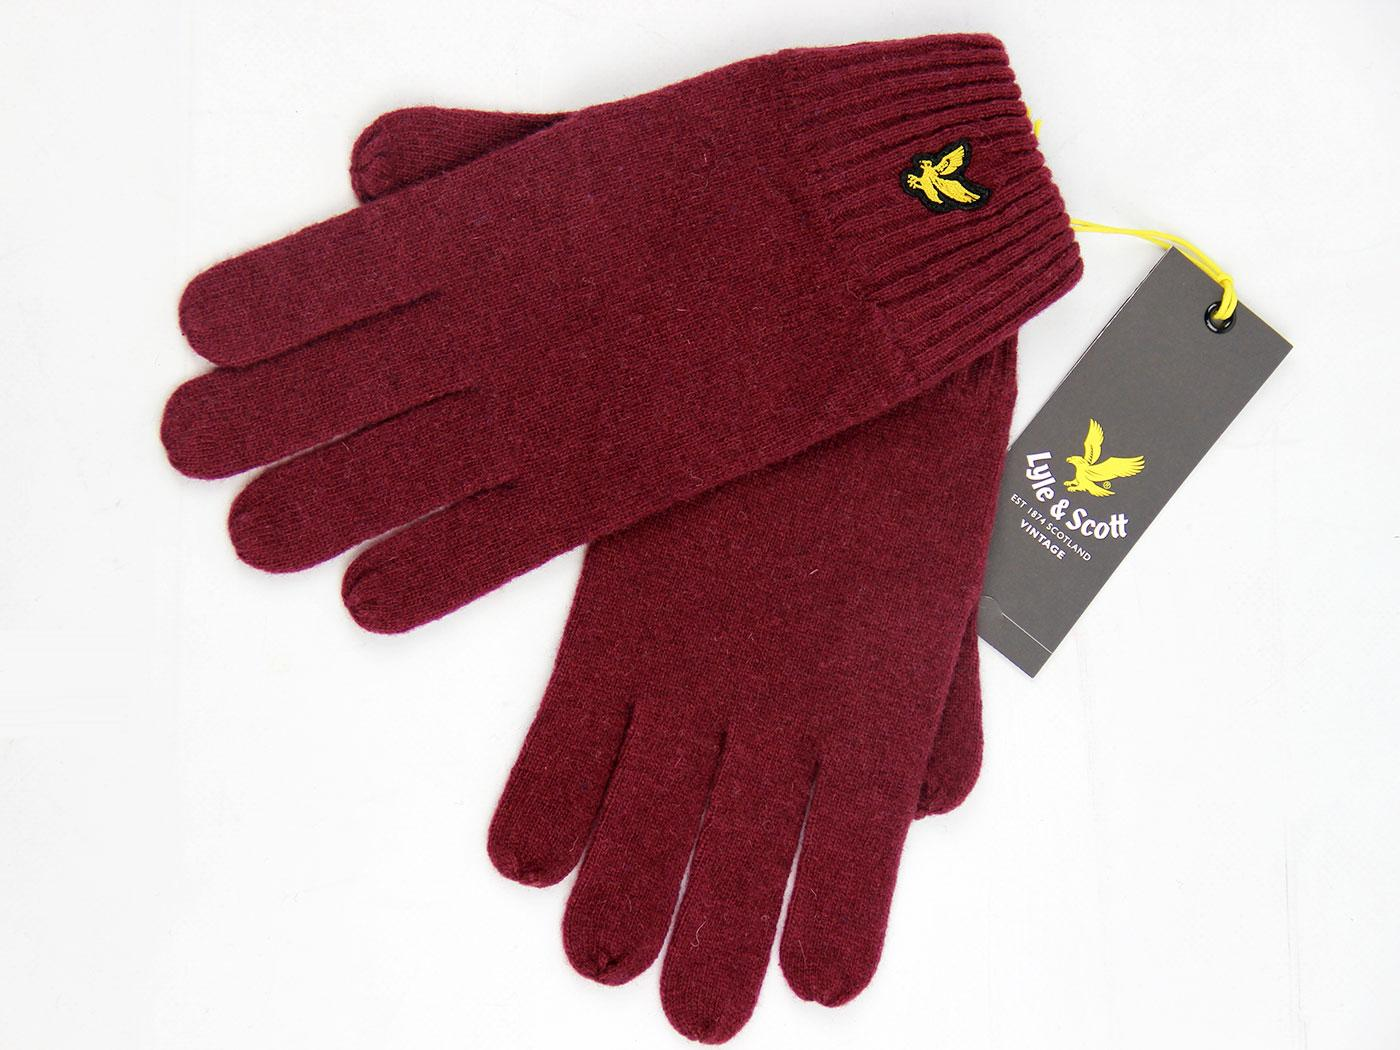 LYLE & SCOTT Retro Plain Lambswool Blend Gloves CJ